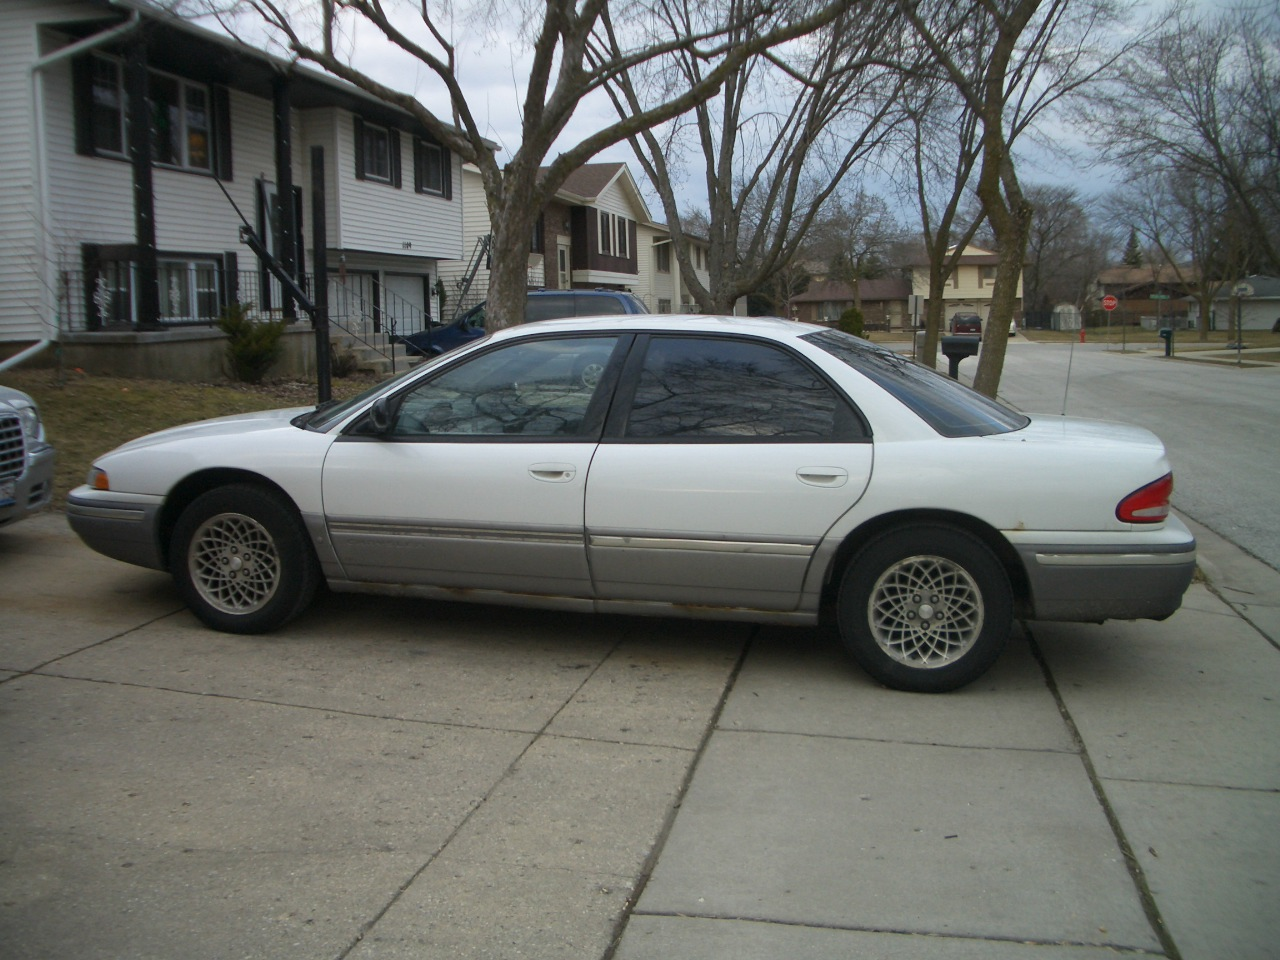 1995 Chrysler Concorde Silver | 200  Interior and Exterior Images